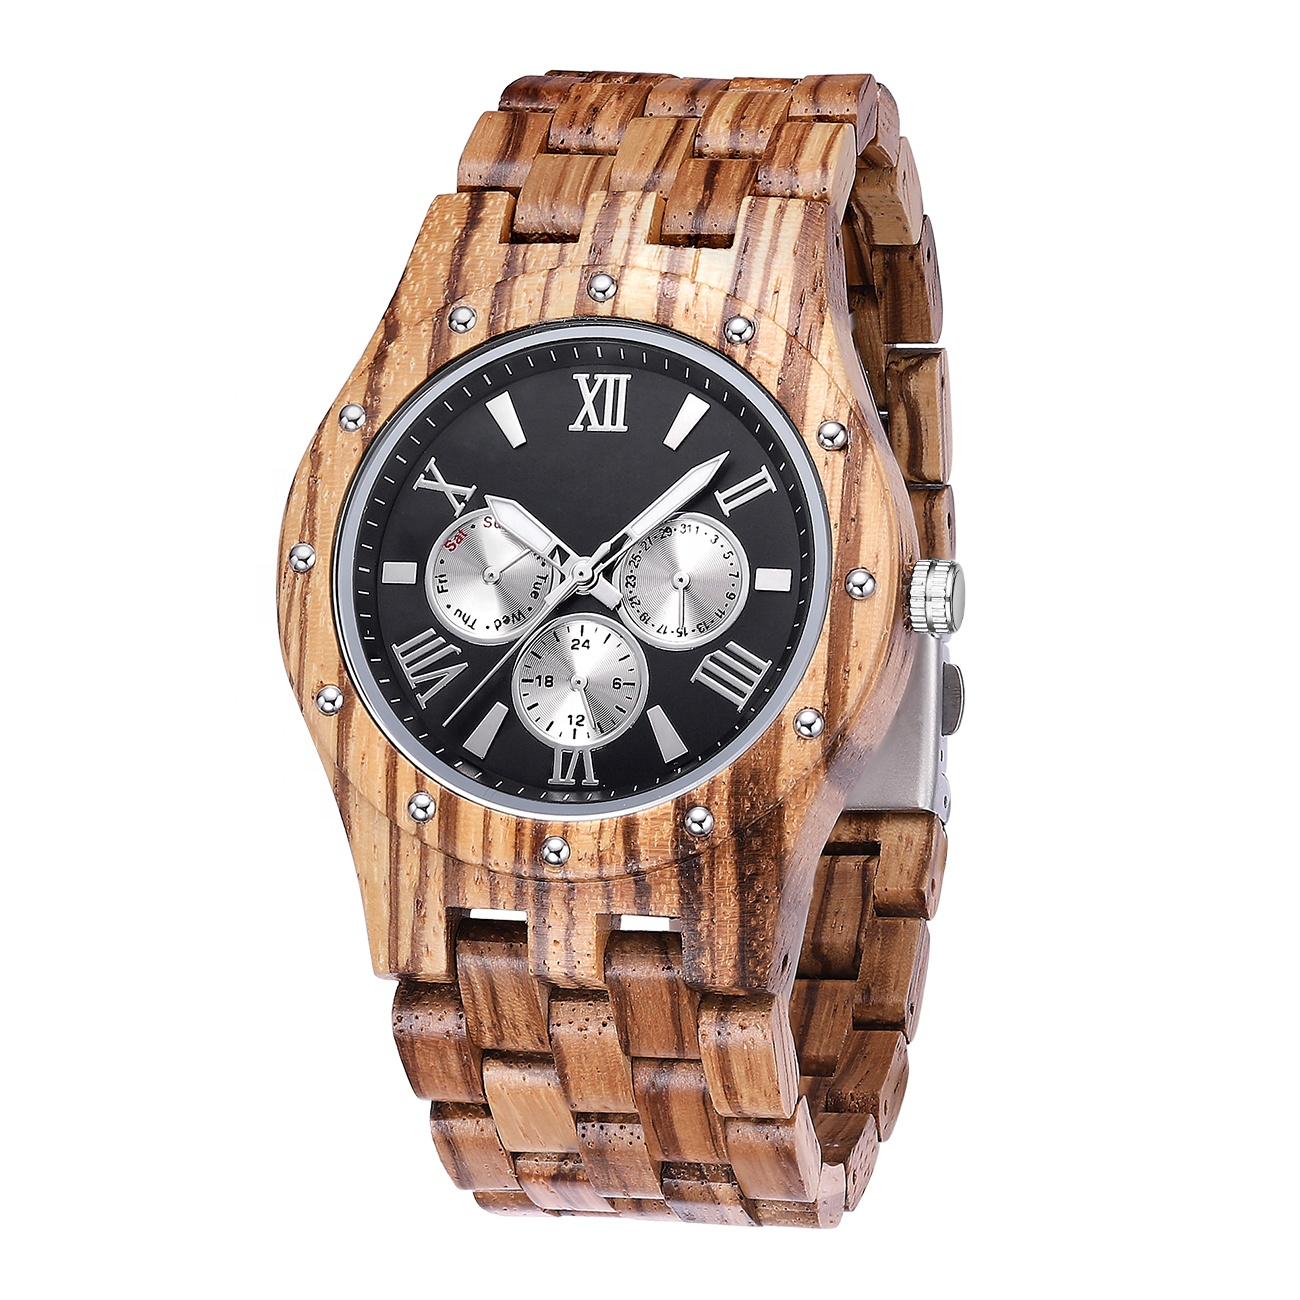 Droshipping Customer YOur Private Logo Wood Grain Watch